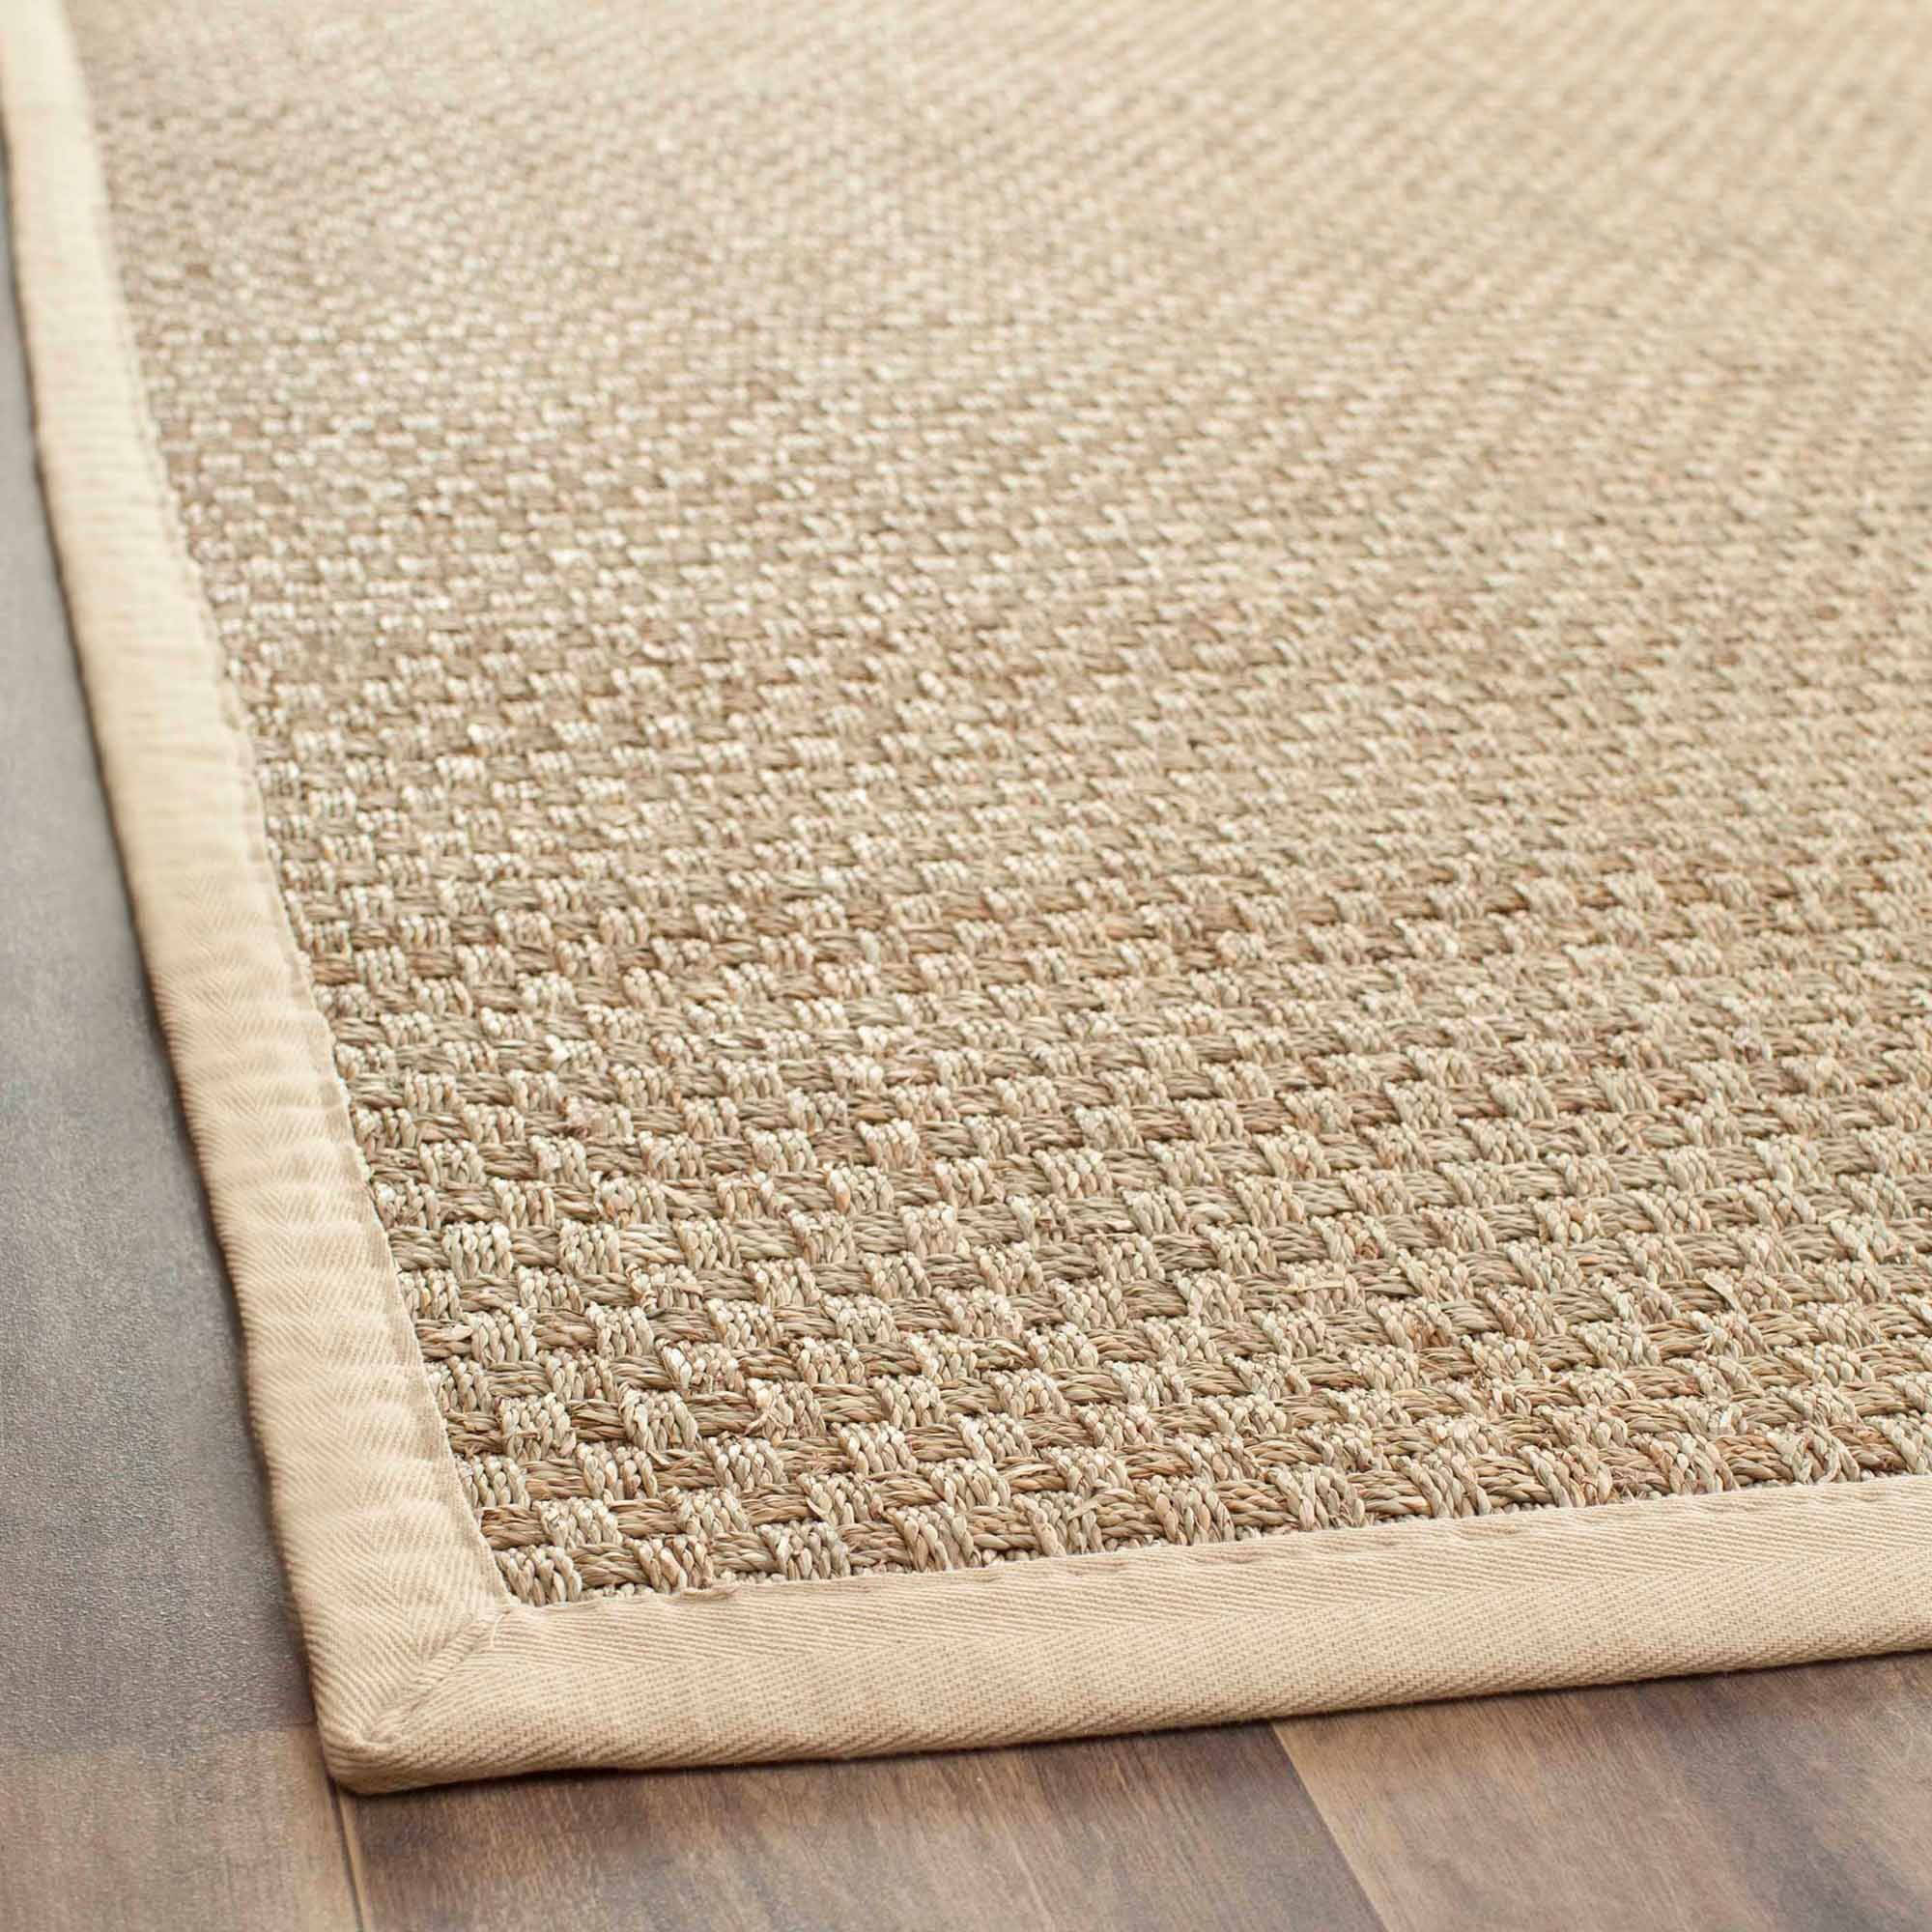 Safavieh Basket-Weave Seagrass Area Rug, Natural/Beige